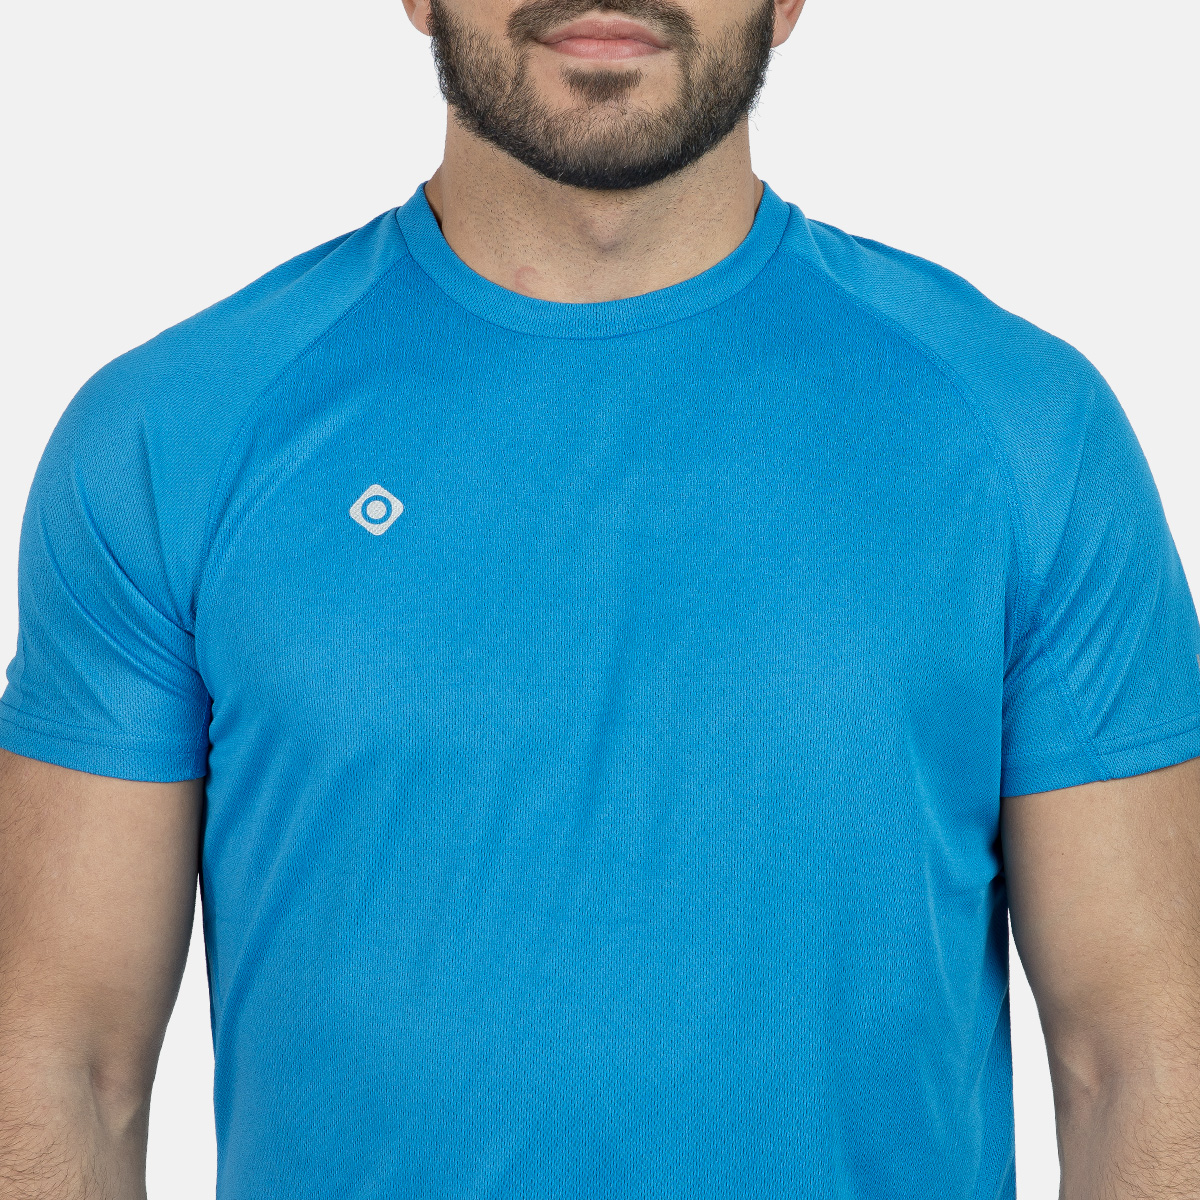 MAN'S CREUS II T-SHIRT BLUE